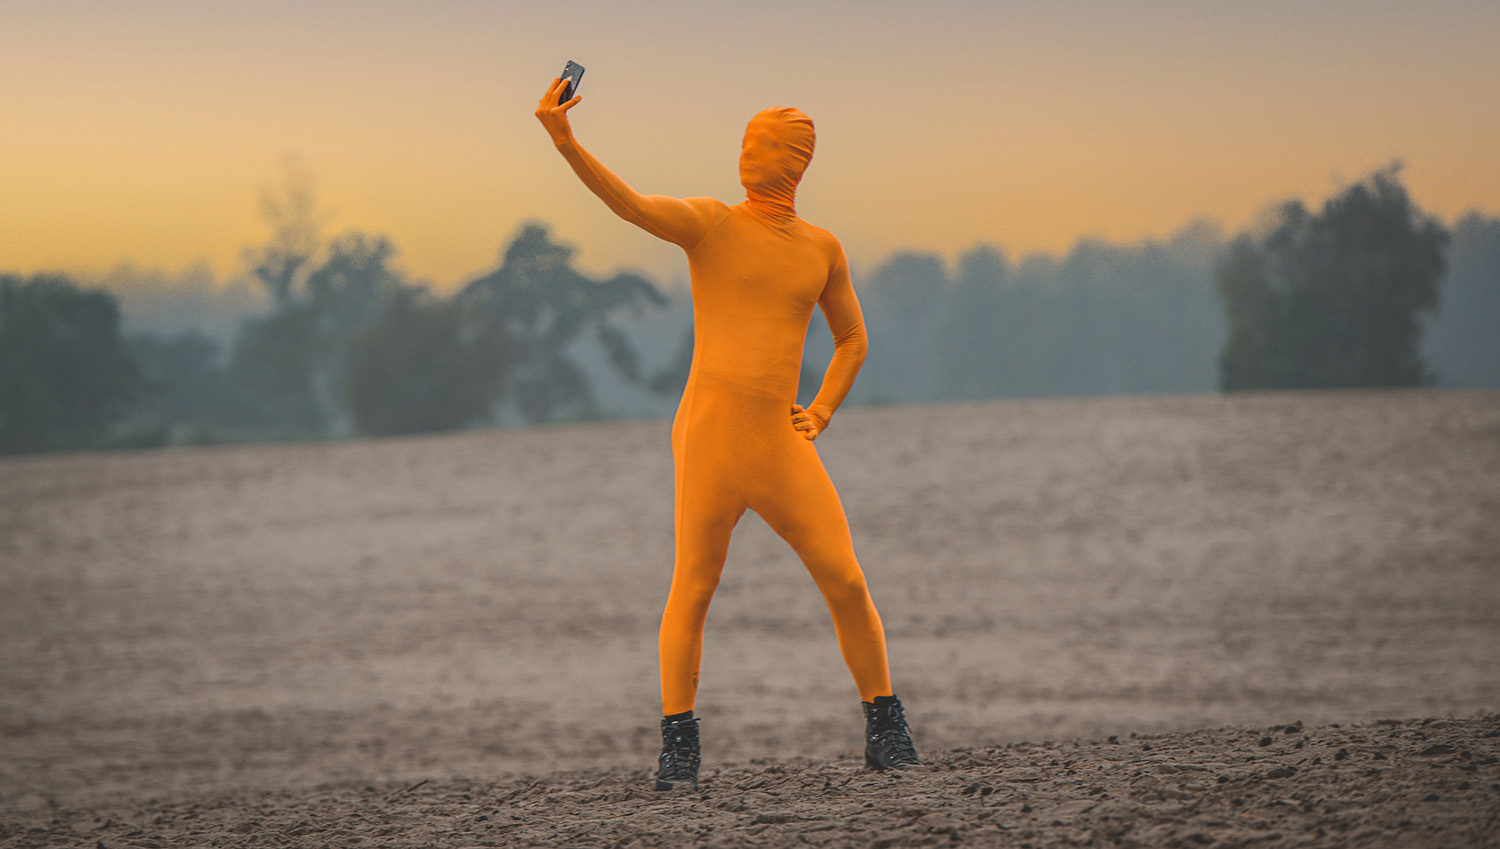 selfie orange guy